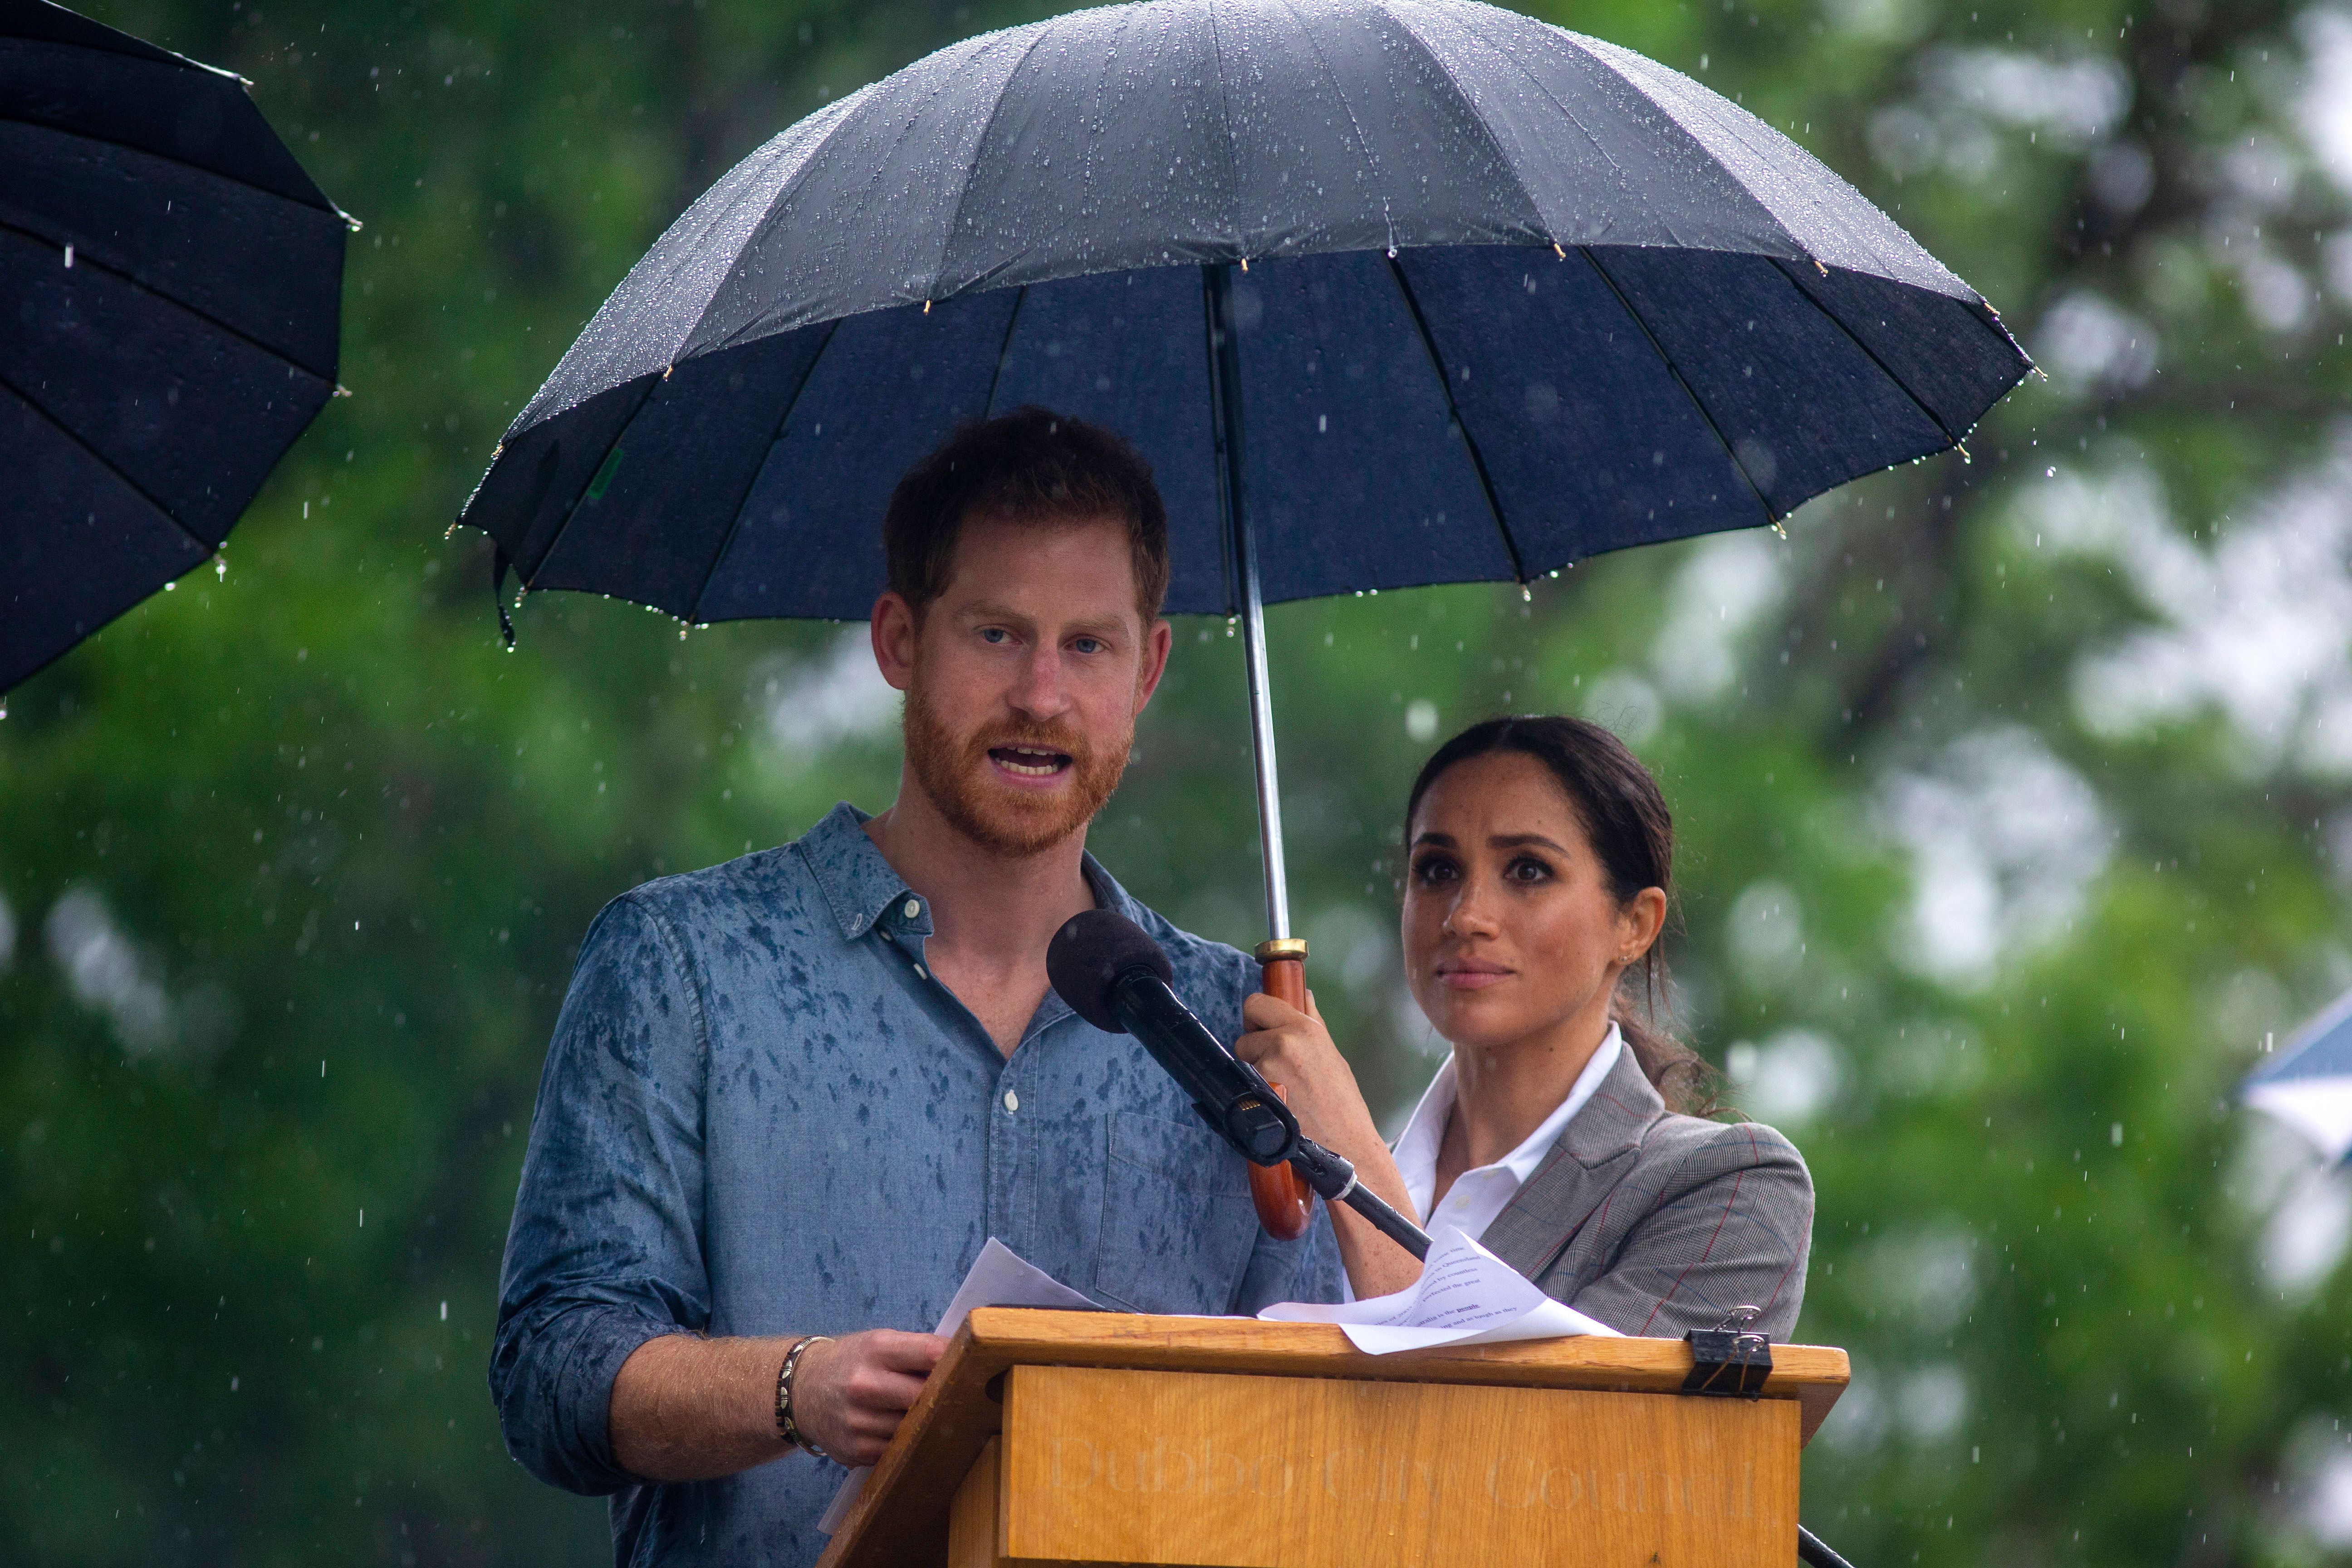 Prince Harry Delivers Powerful Speech On Seeking Mental Health